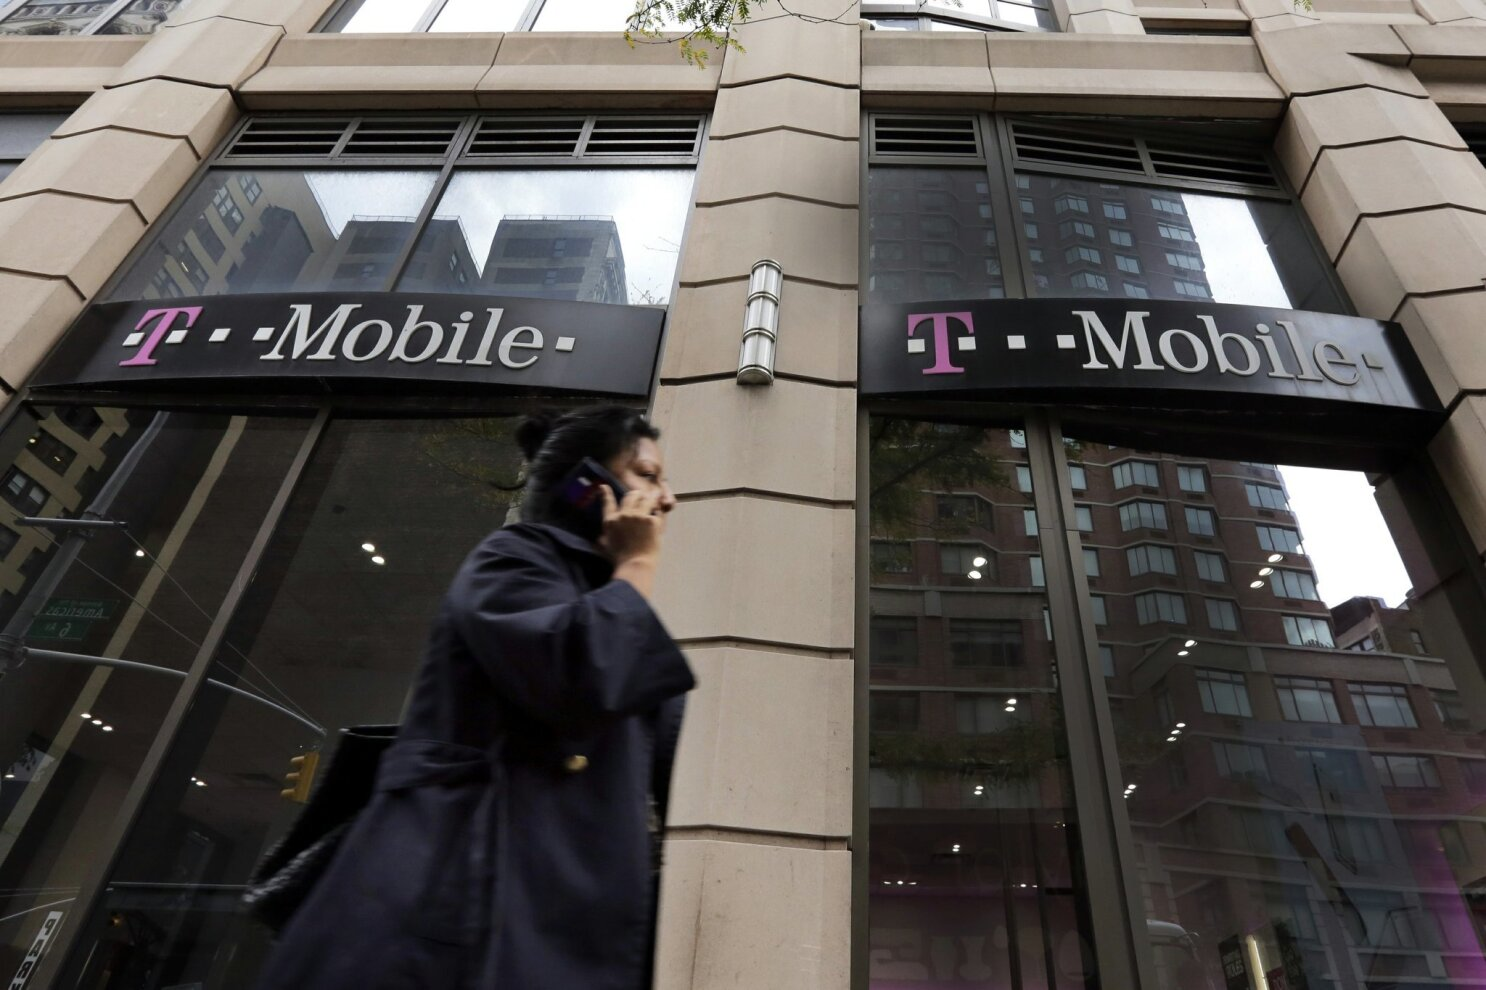 T-Mobile launching nationwide 5G network this week, including in San Diego